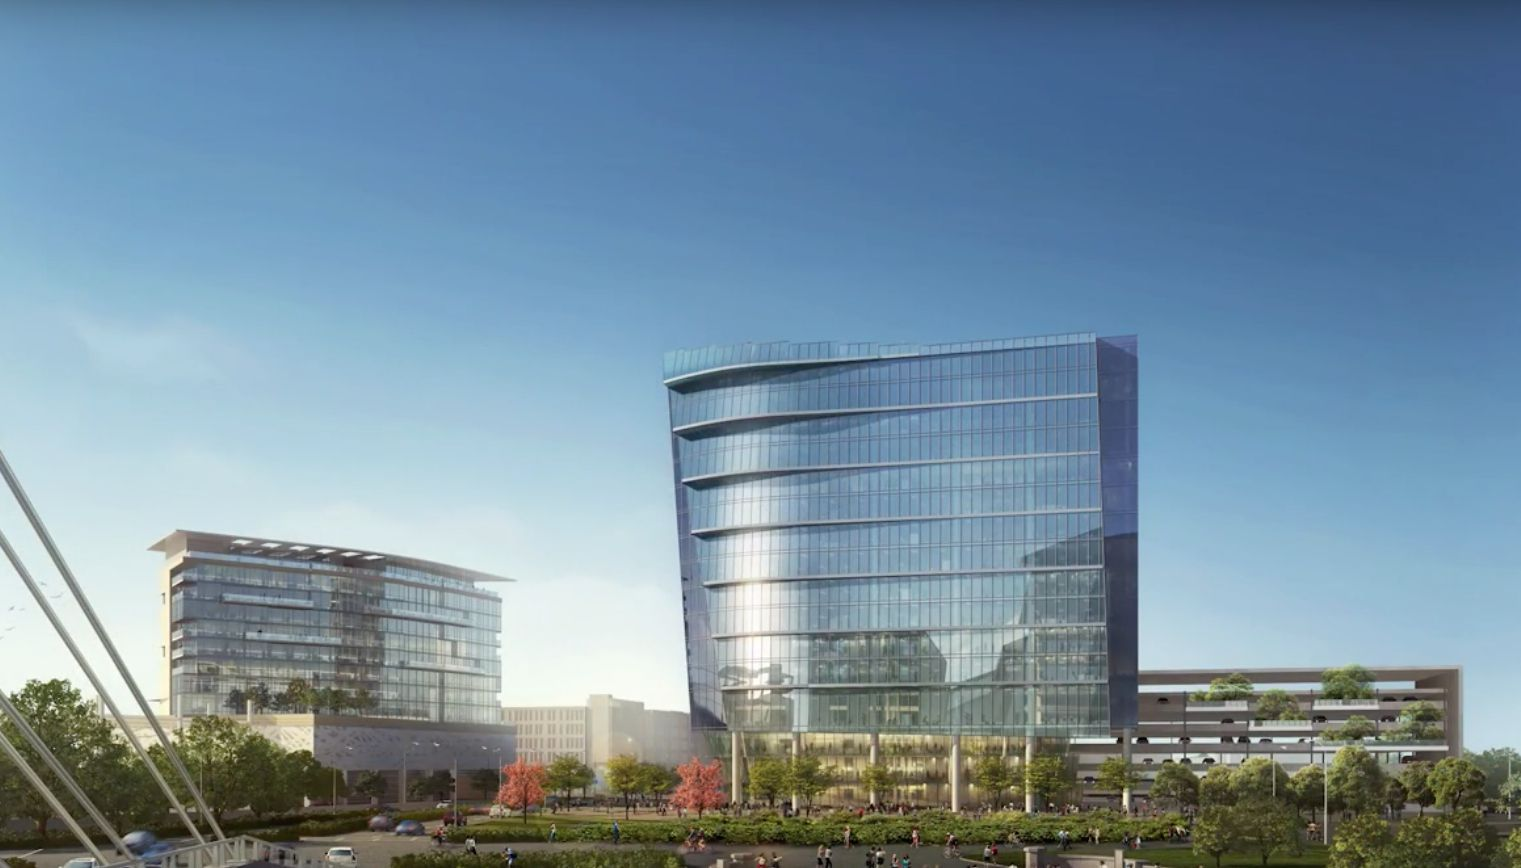 A 2014 plan for the site included an office tower an a hotel across Singleton Boulevard.